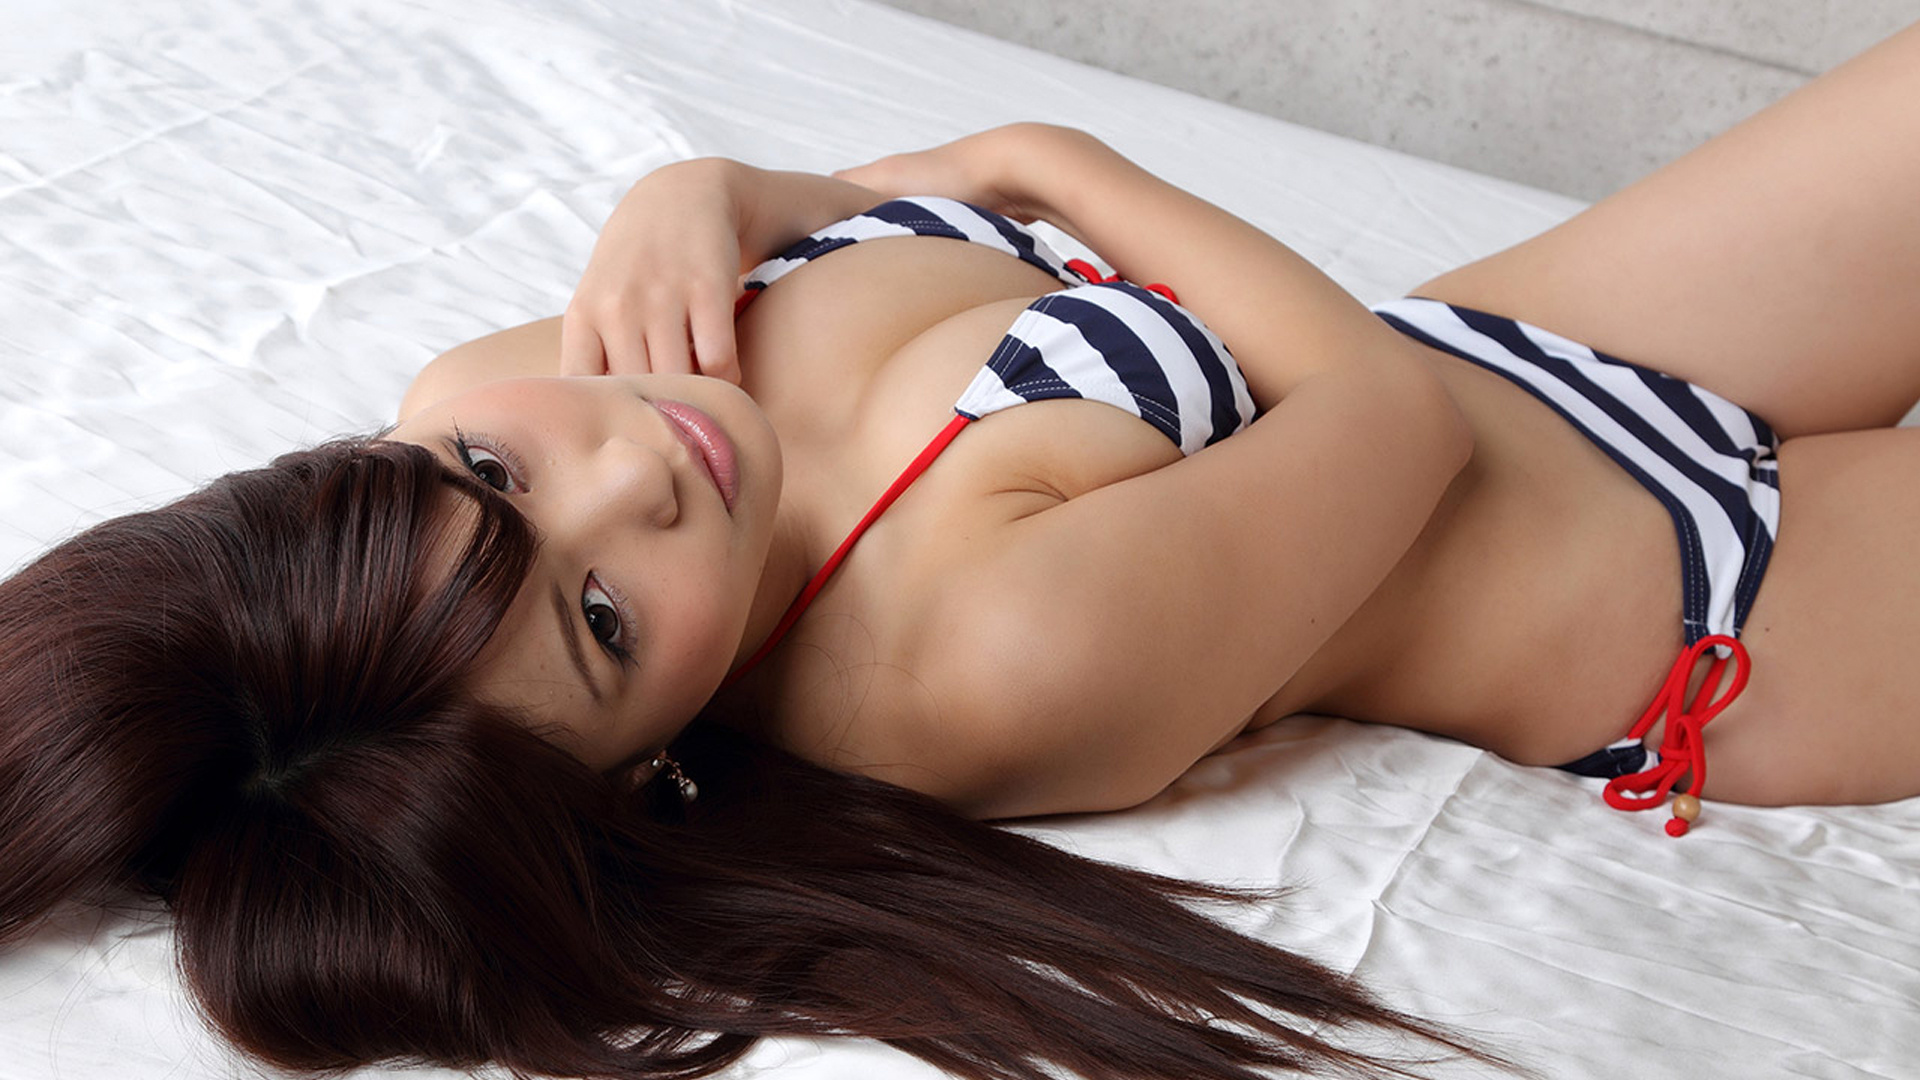 girls Hot asian wallpapers bikini